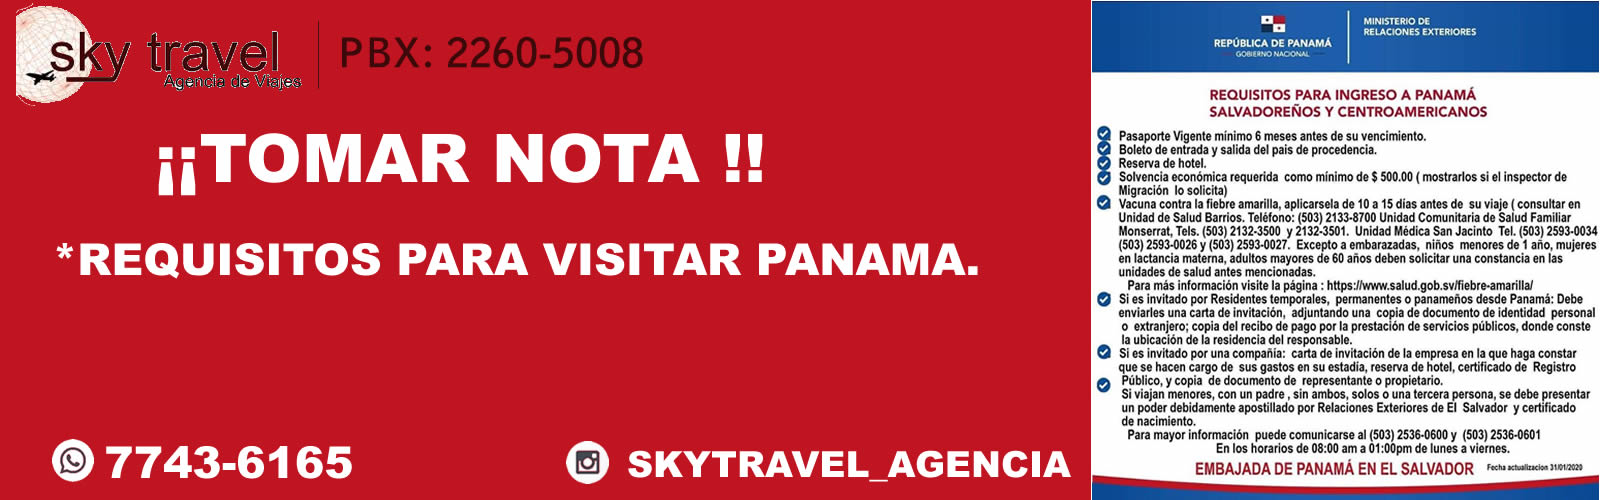 requisitos para entrar a panama